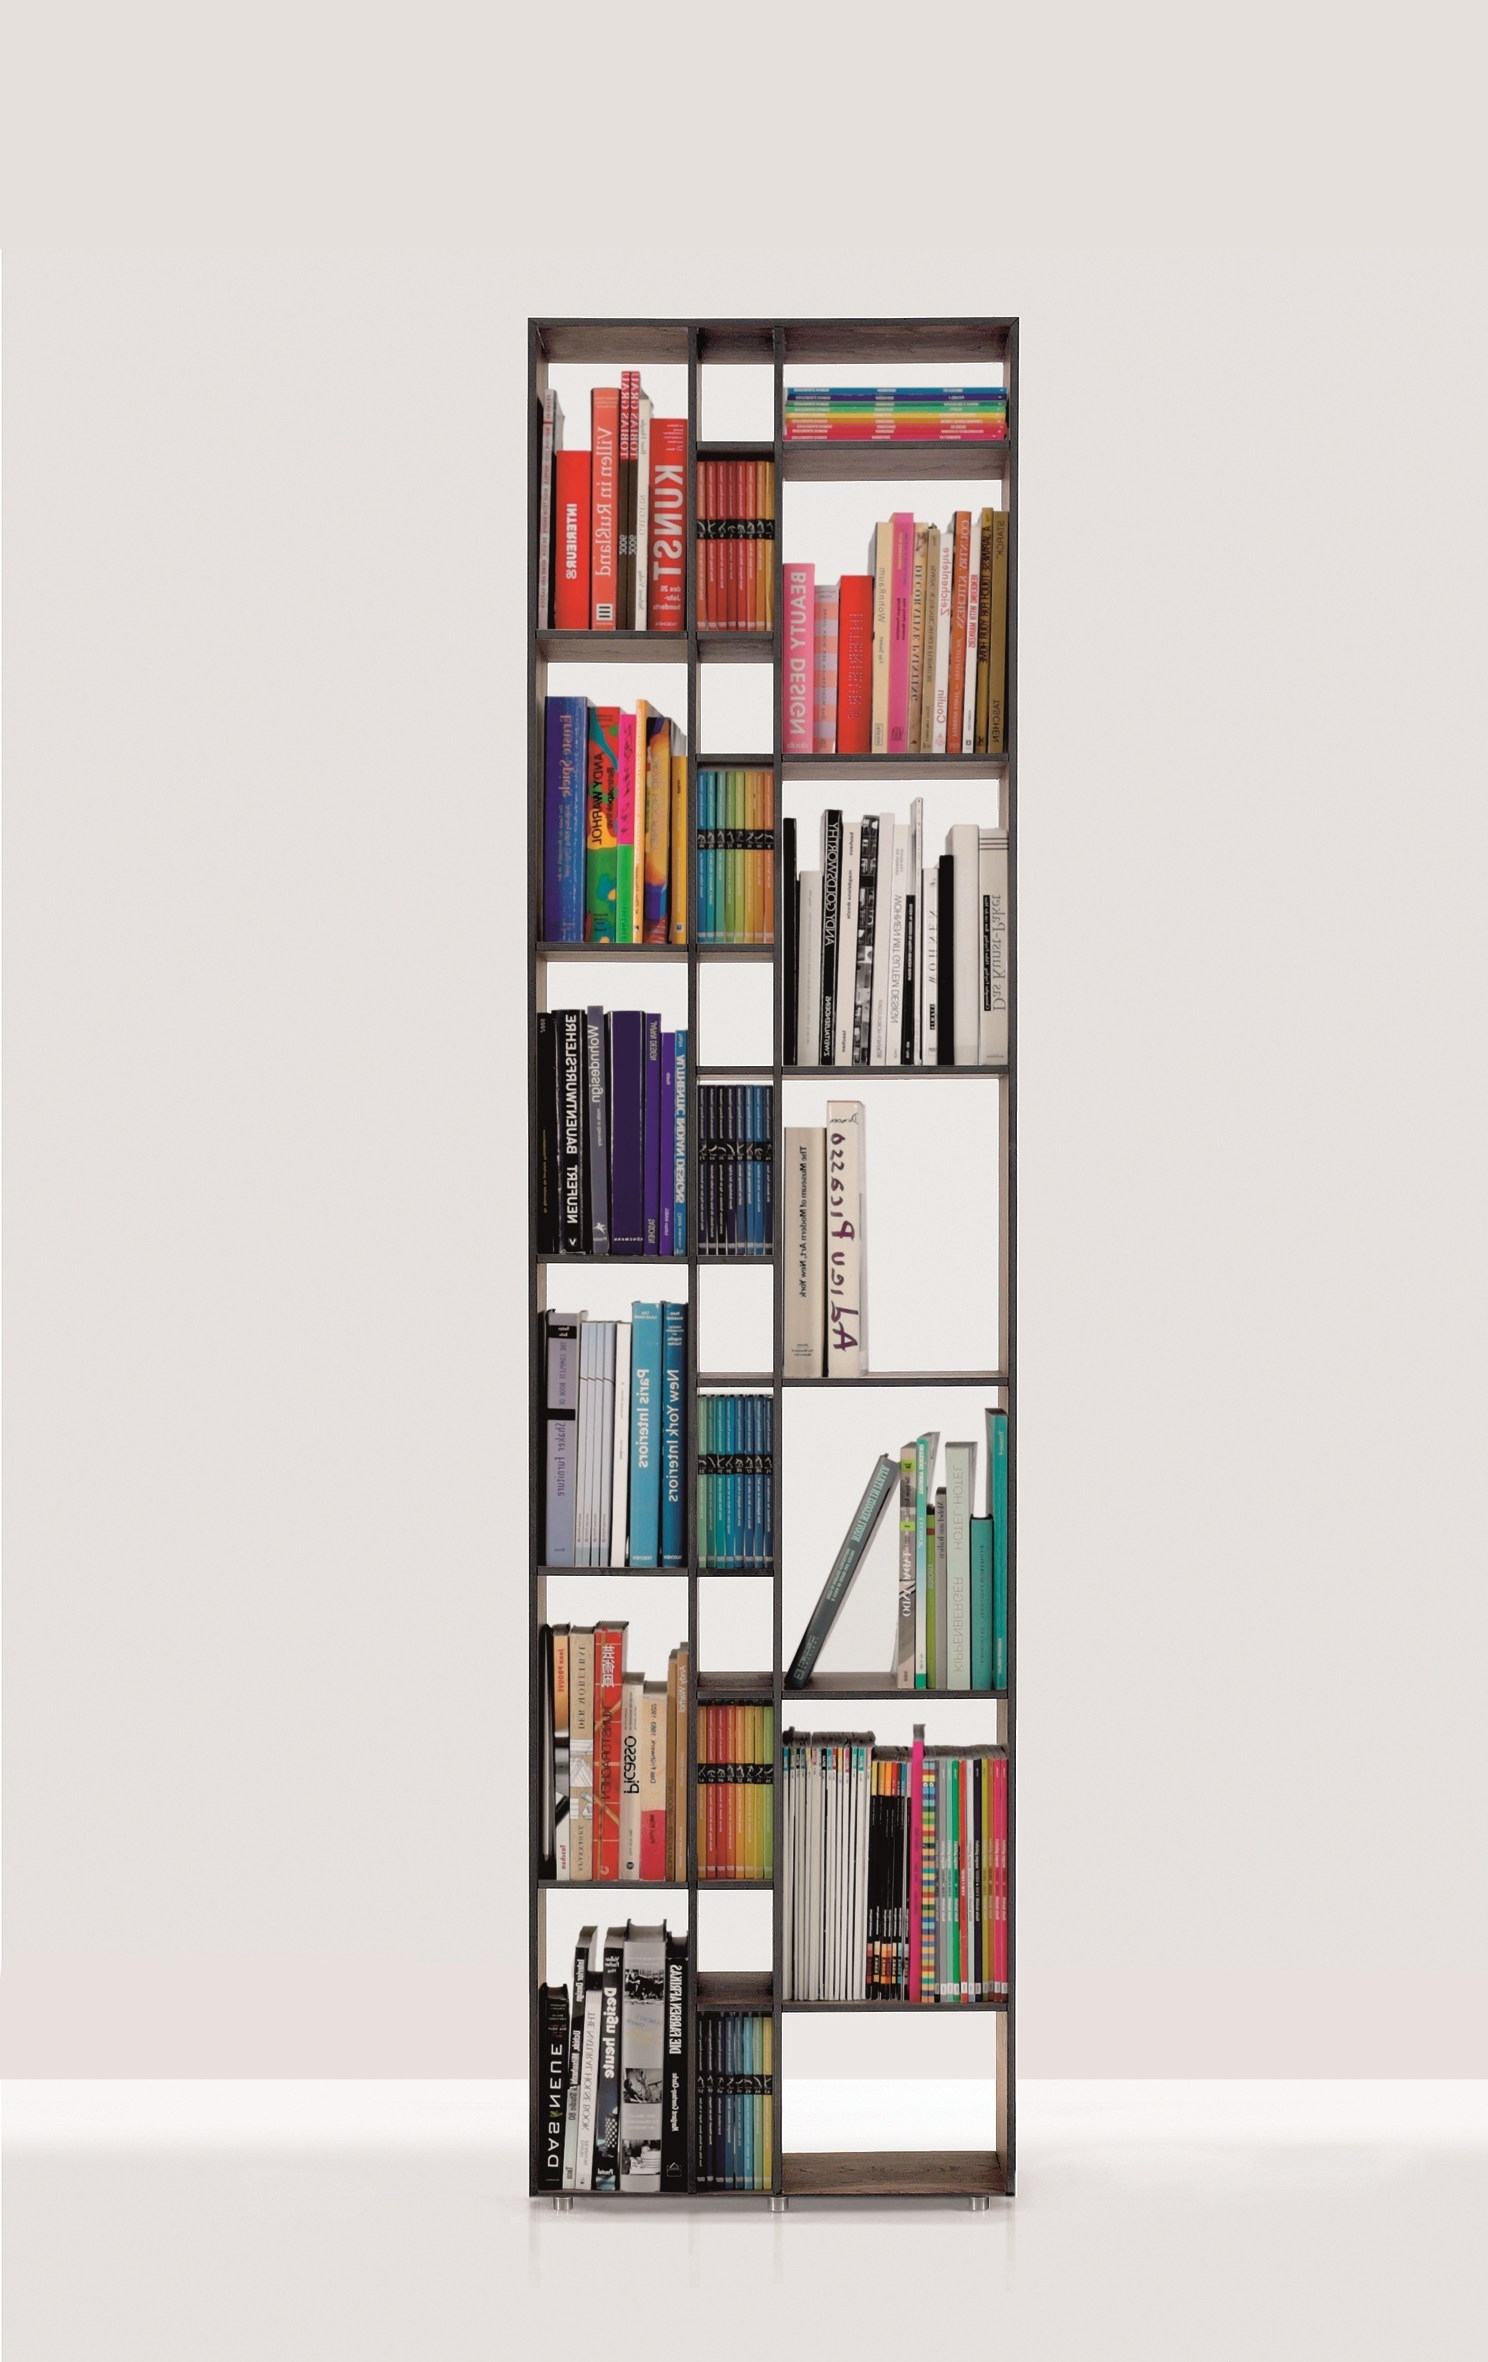 Widely Used Offenes Freistehendes Wand Bücherregal Aus Holz Code 1Zeitraum With Regard To Freestanding Bookcases Wall (View 15 of 15)